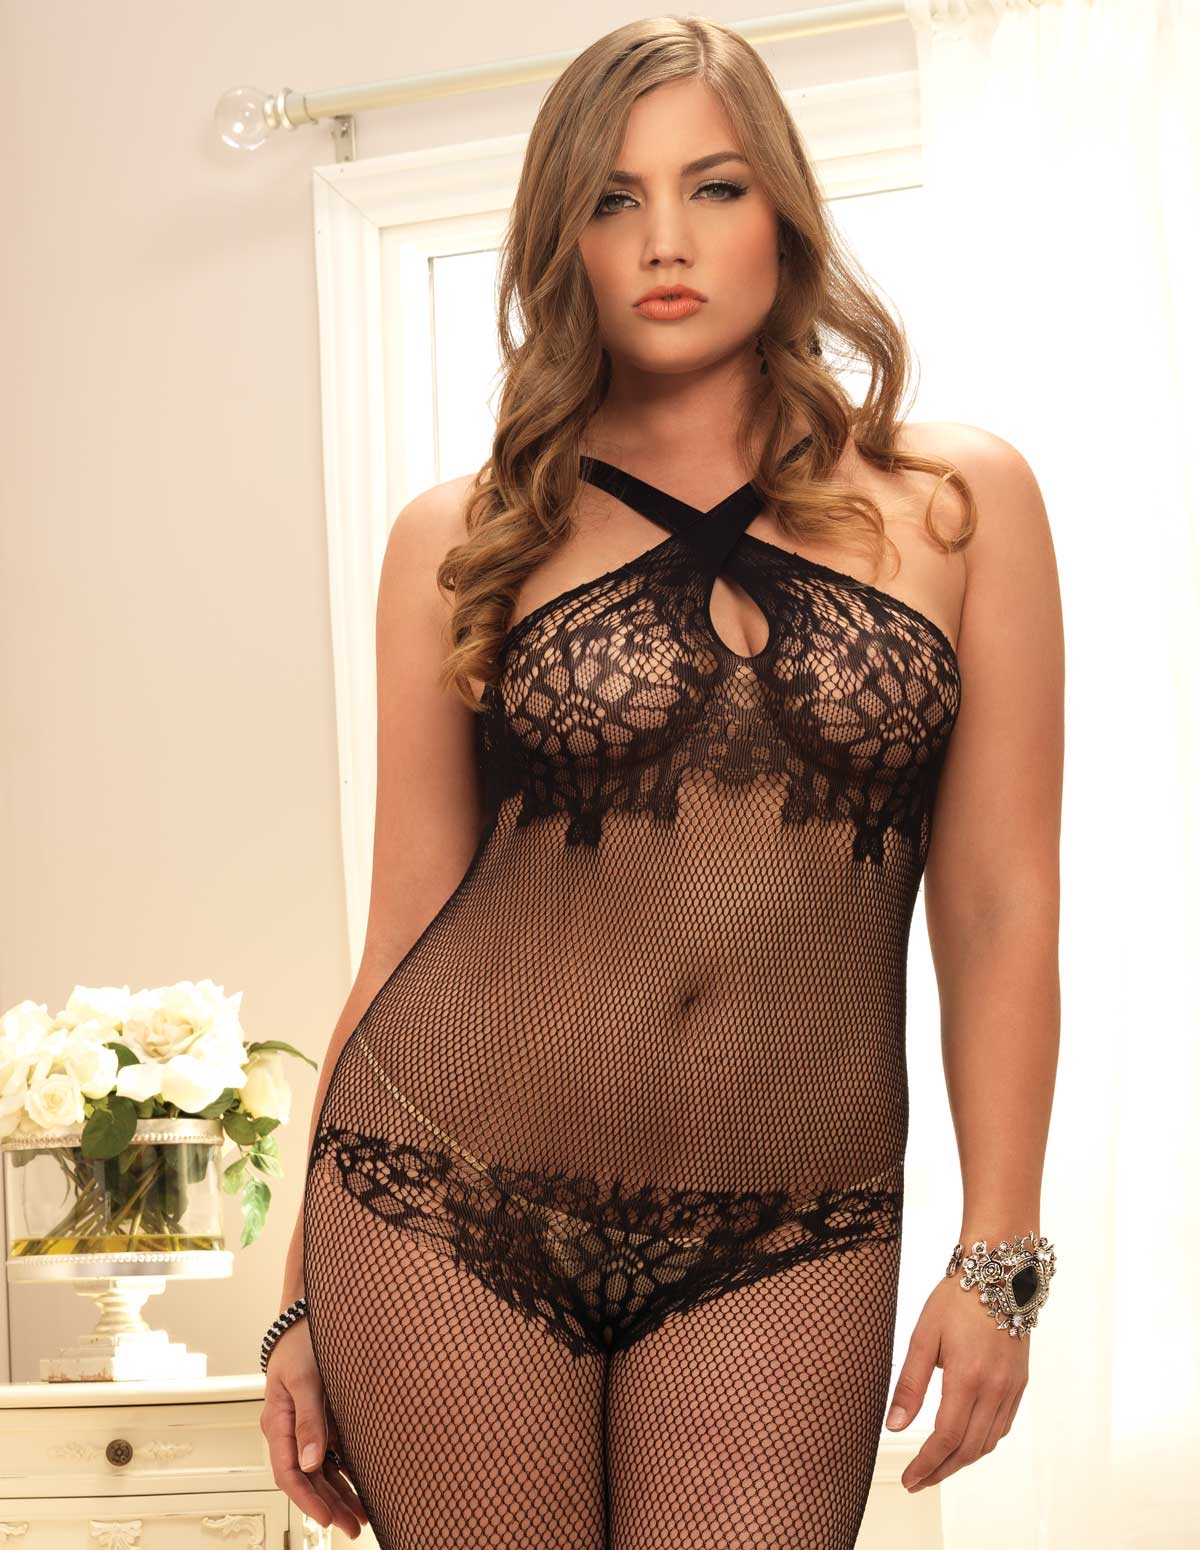 Convertible Strap Bodystocking